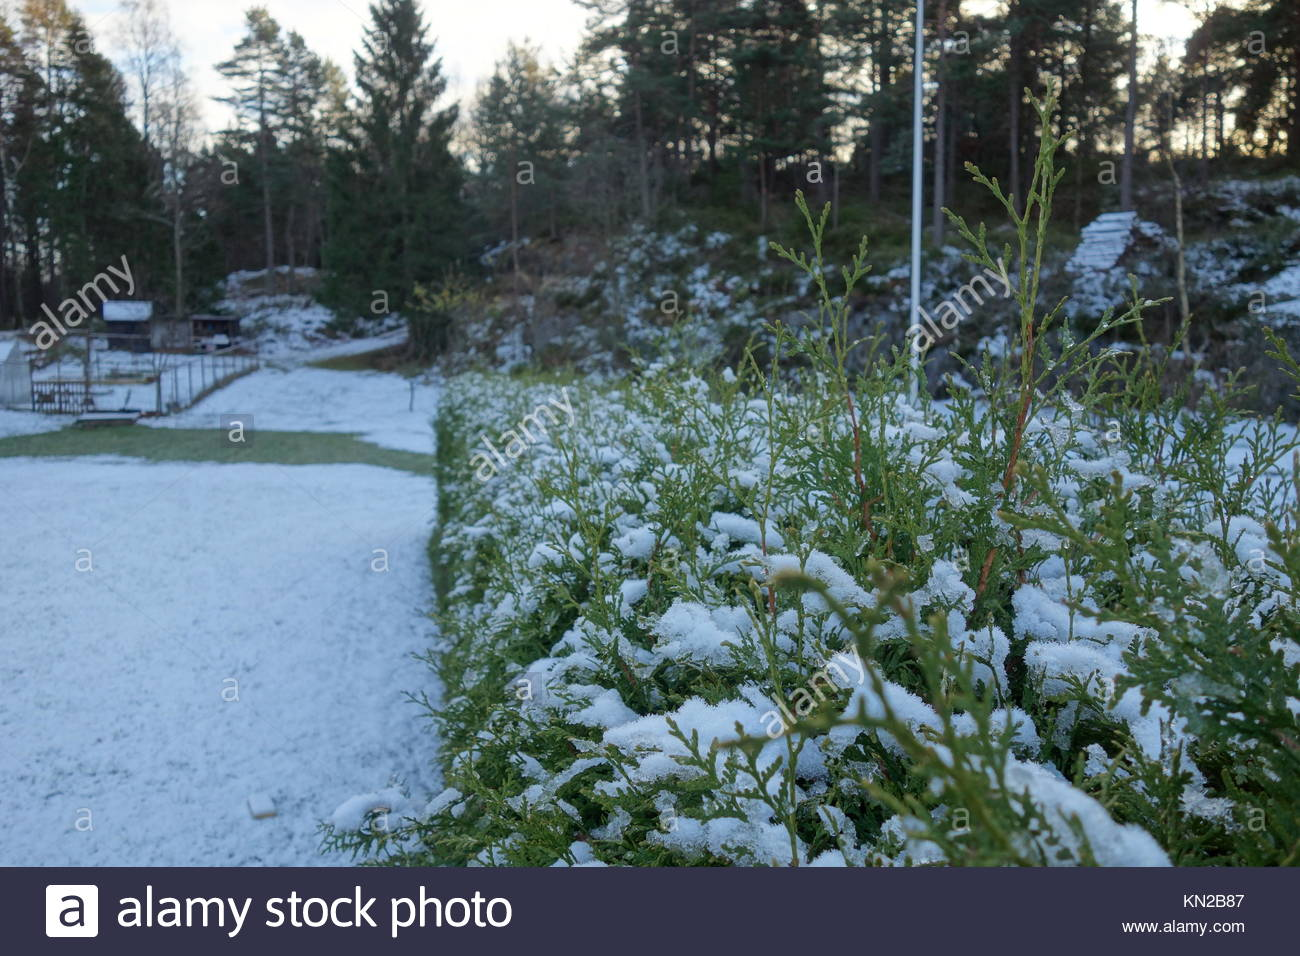 lawn and hedge covered in snow - Stock Image